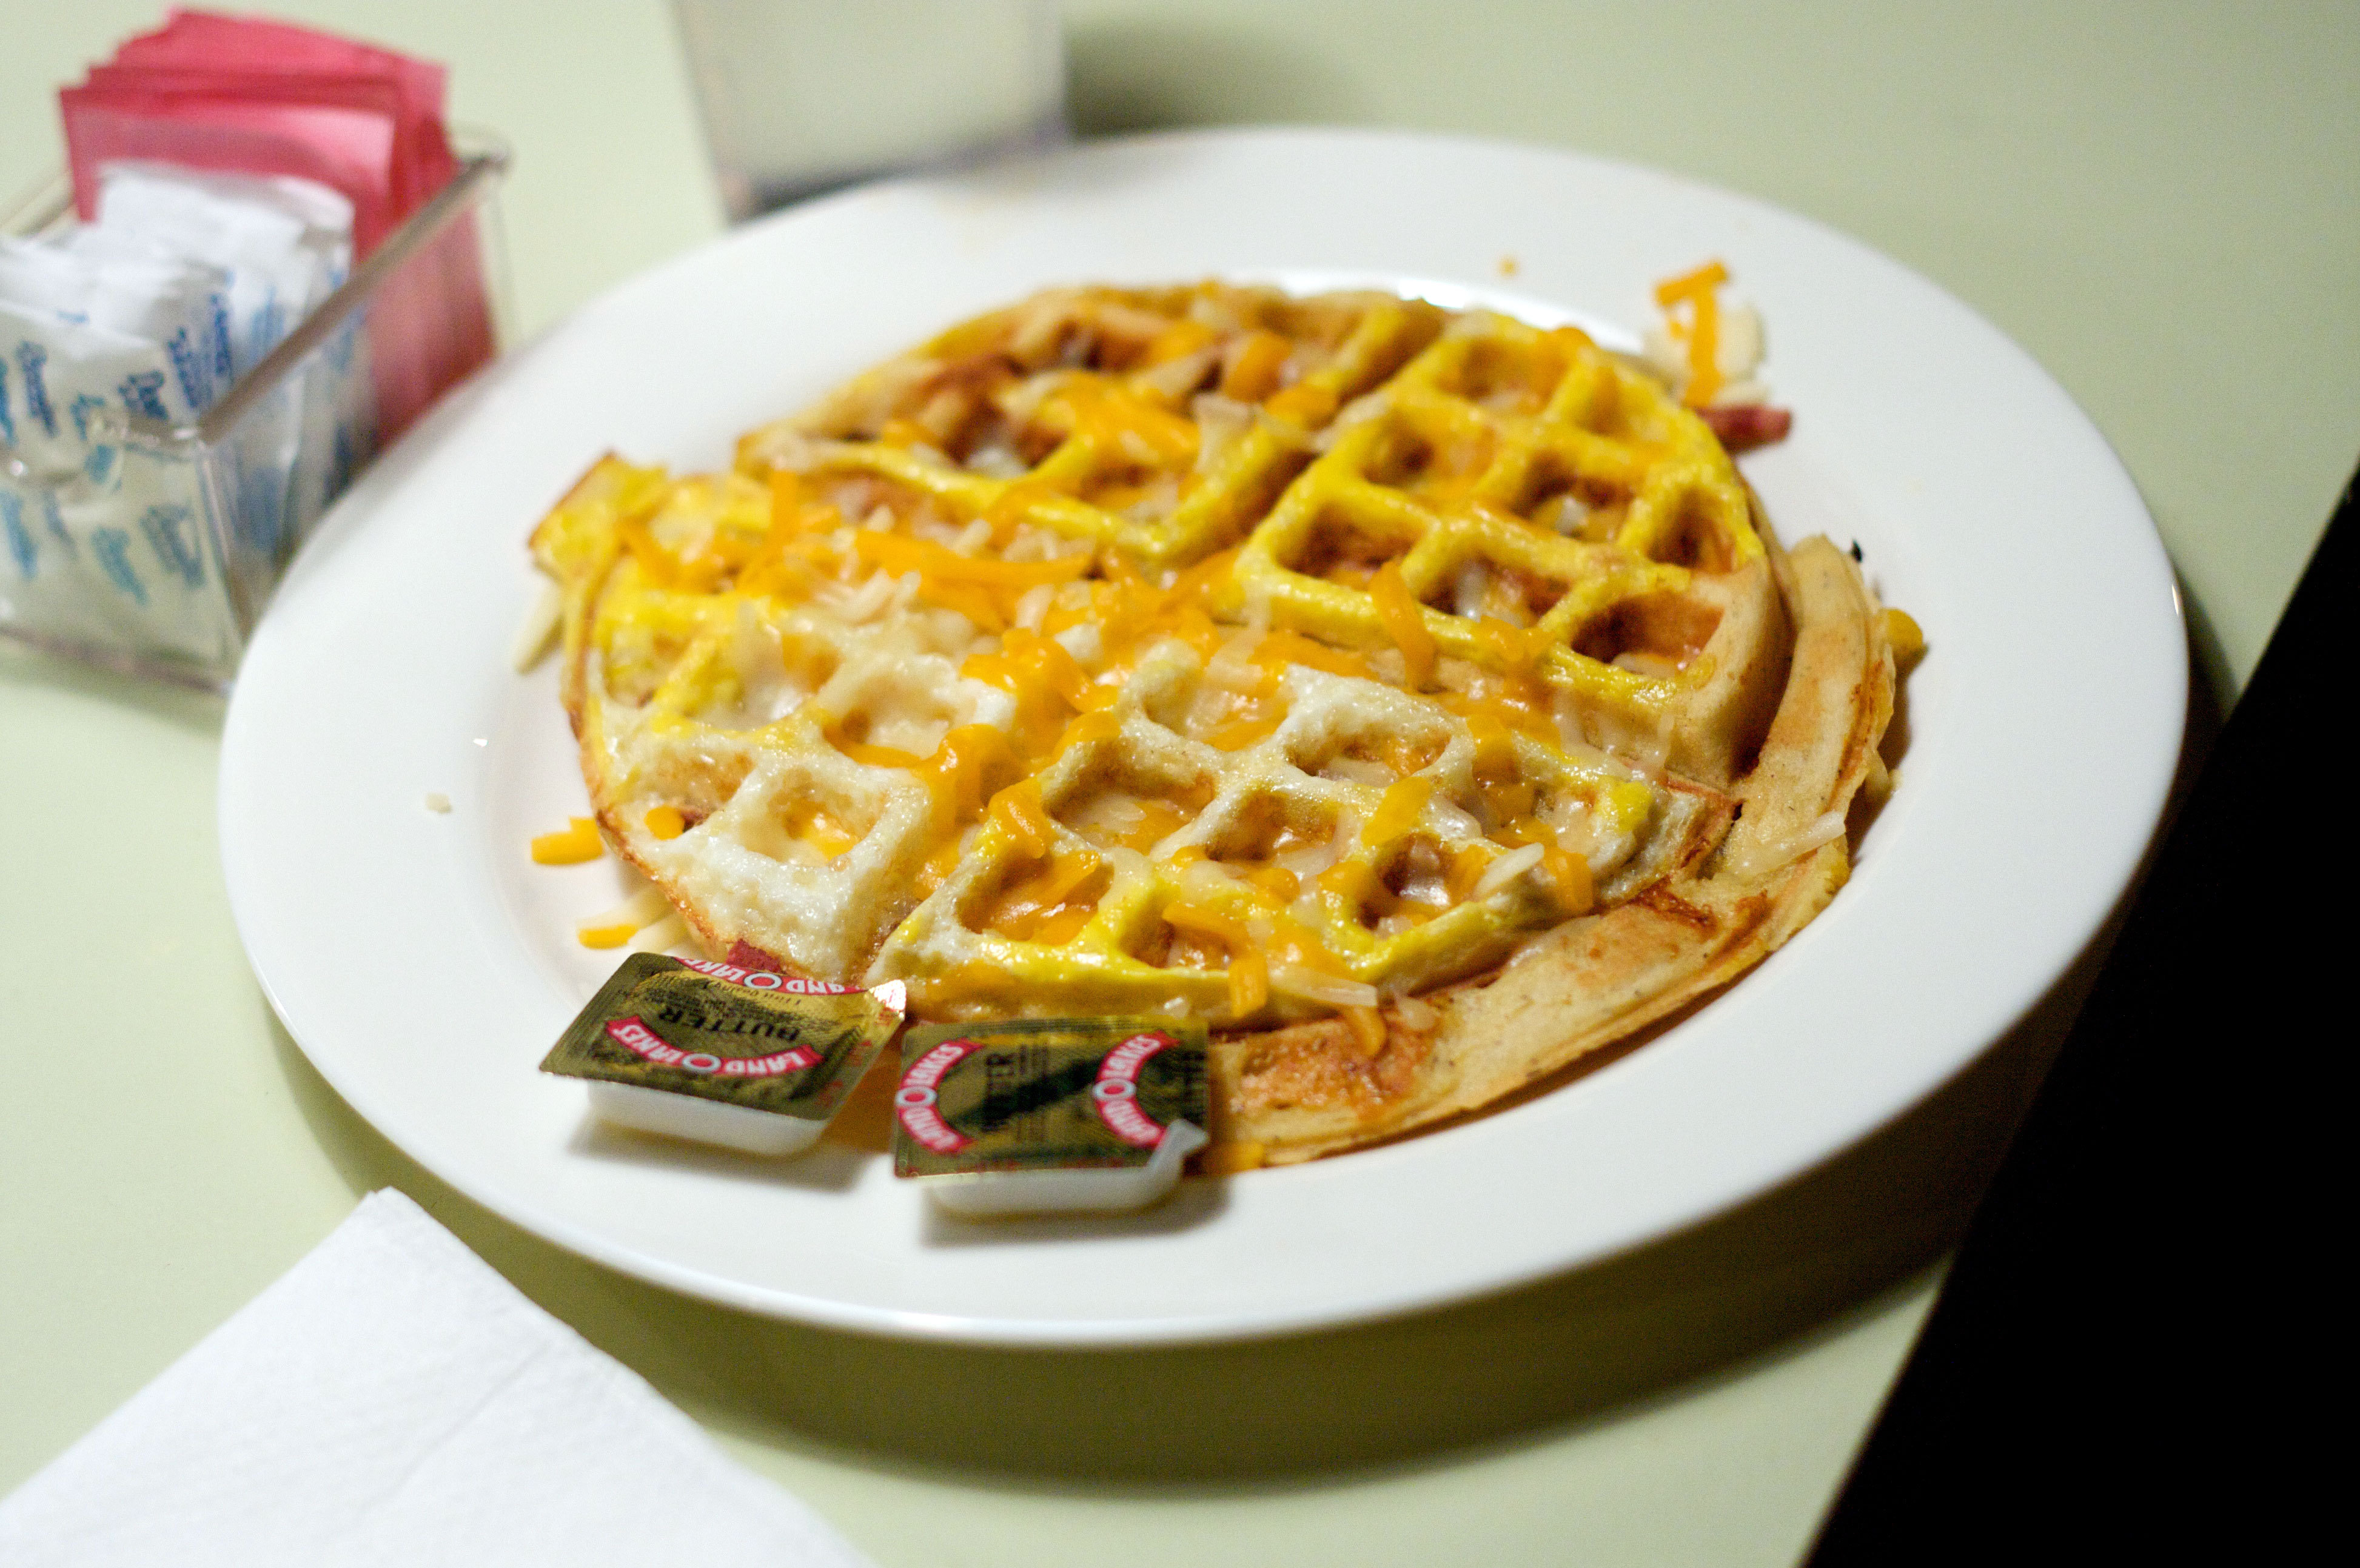 The Waffle Shop serves up delicious homemade waffles. (credit: Travis Wolfe | Photo Staff)